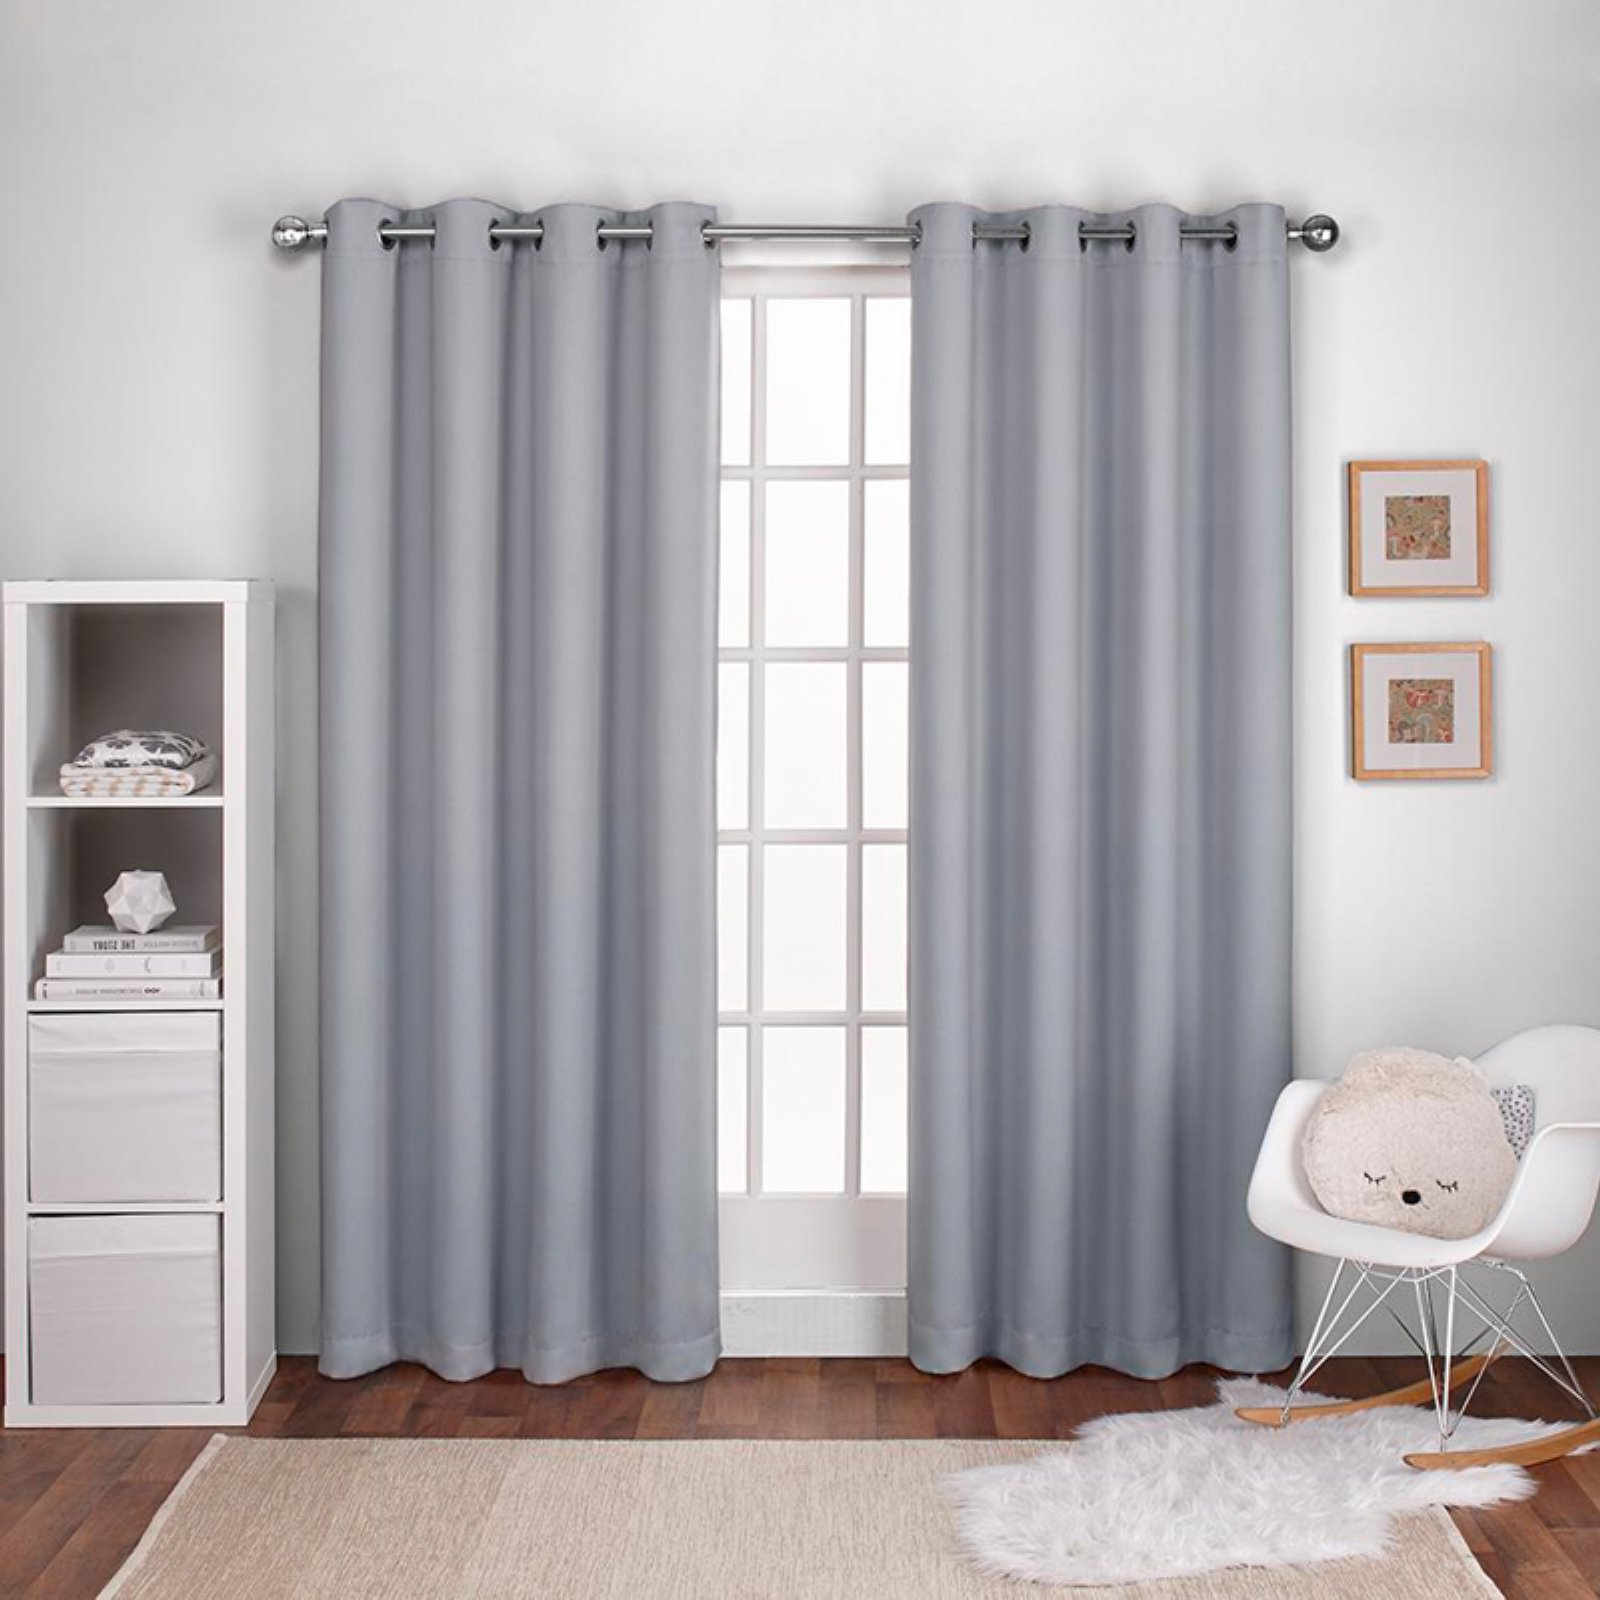 Well Known Woven Blackout Grommet Top Curtain Panel Pairs For Exclusive Home Textured Woven Blackout Window Curtain Panel Pair With Grommet Top (View 10 of 20)